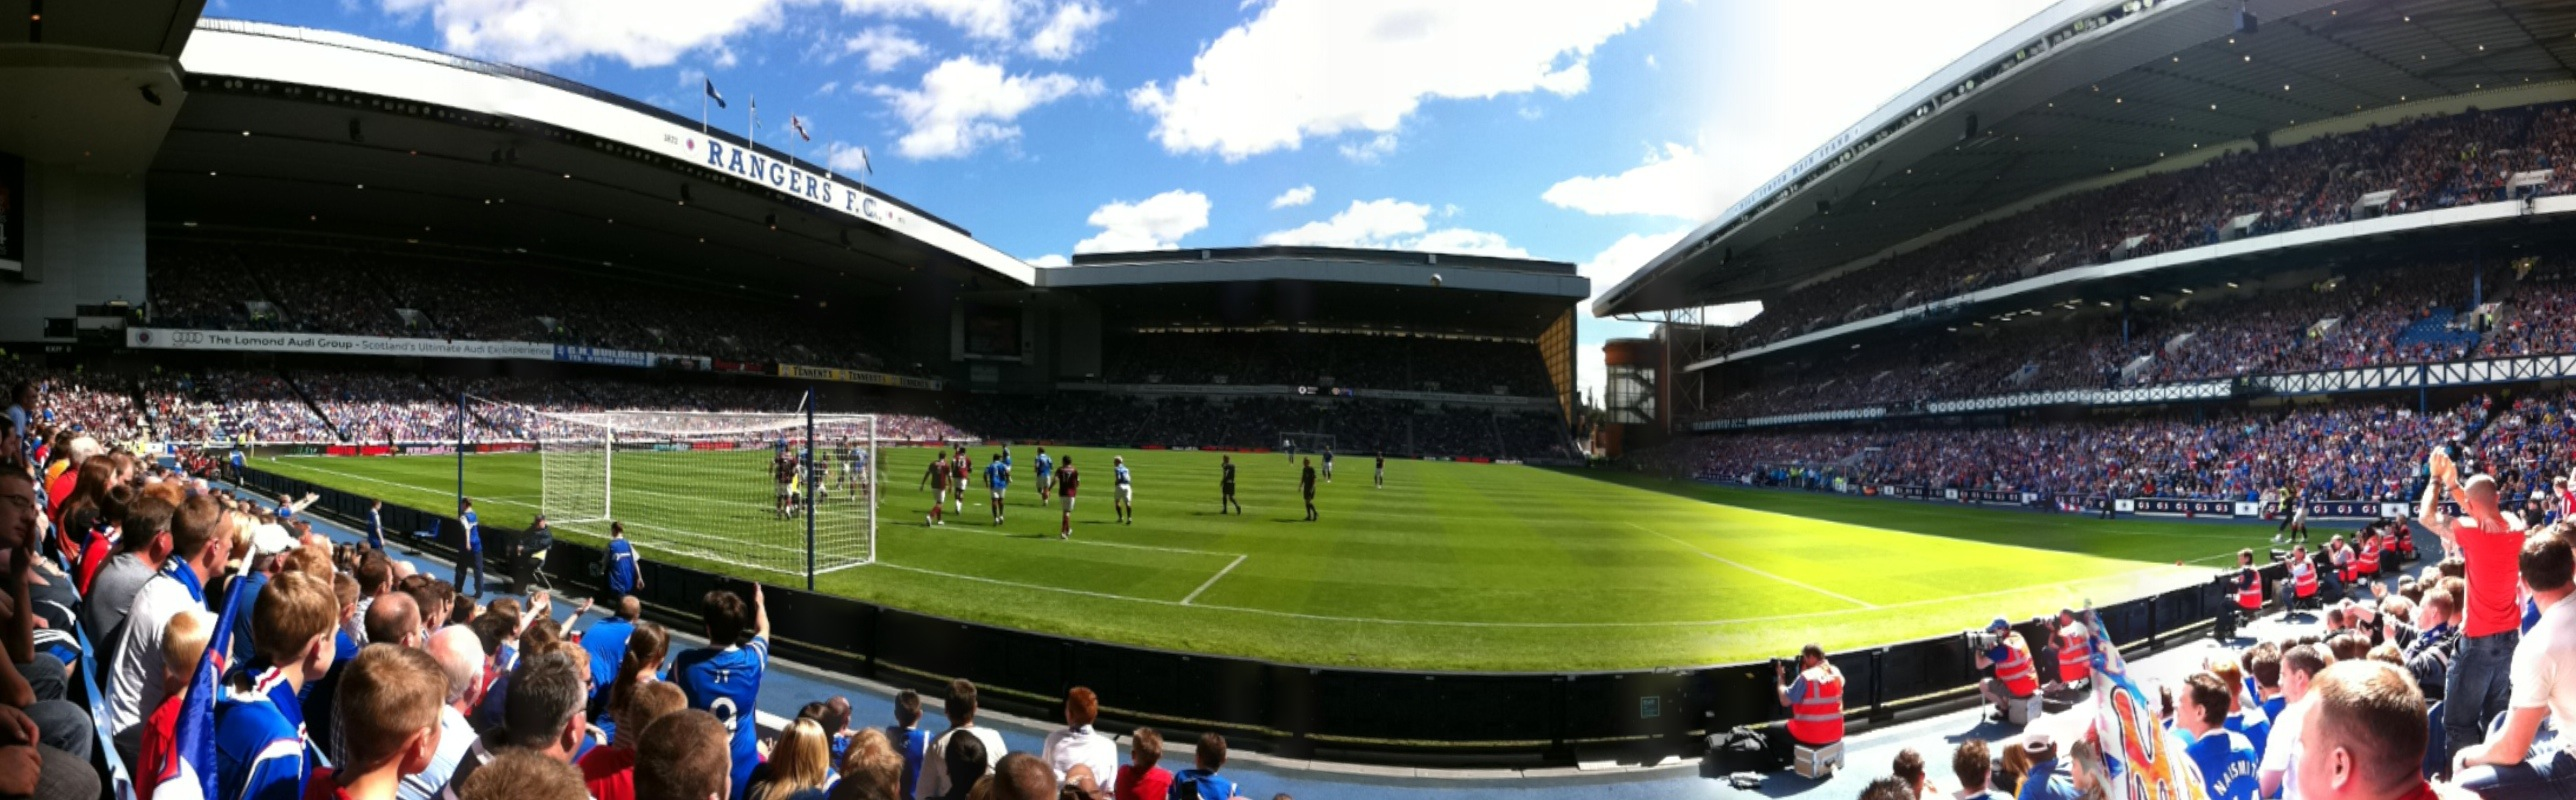 Glasgow_Rangers_vs_Hearts,_Ibrox_Stadium,_23_July_2011